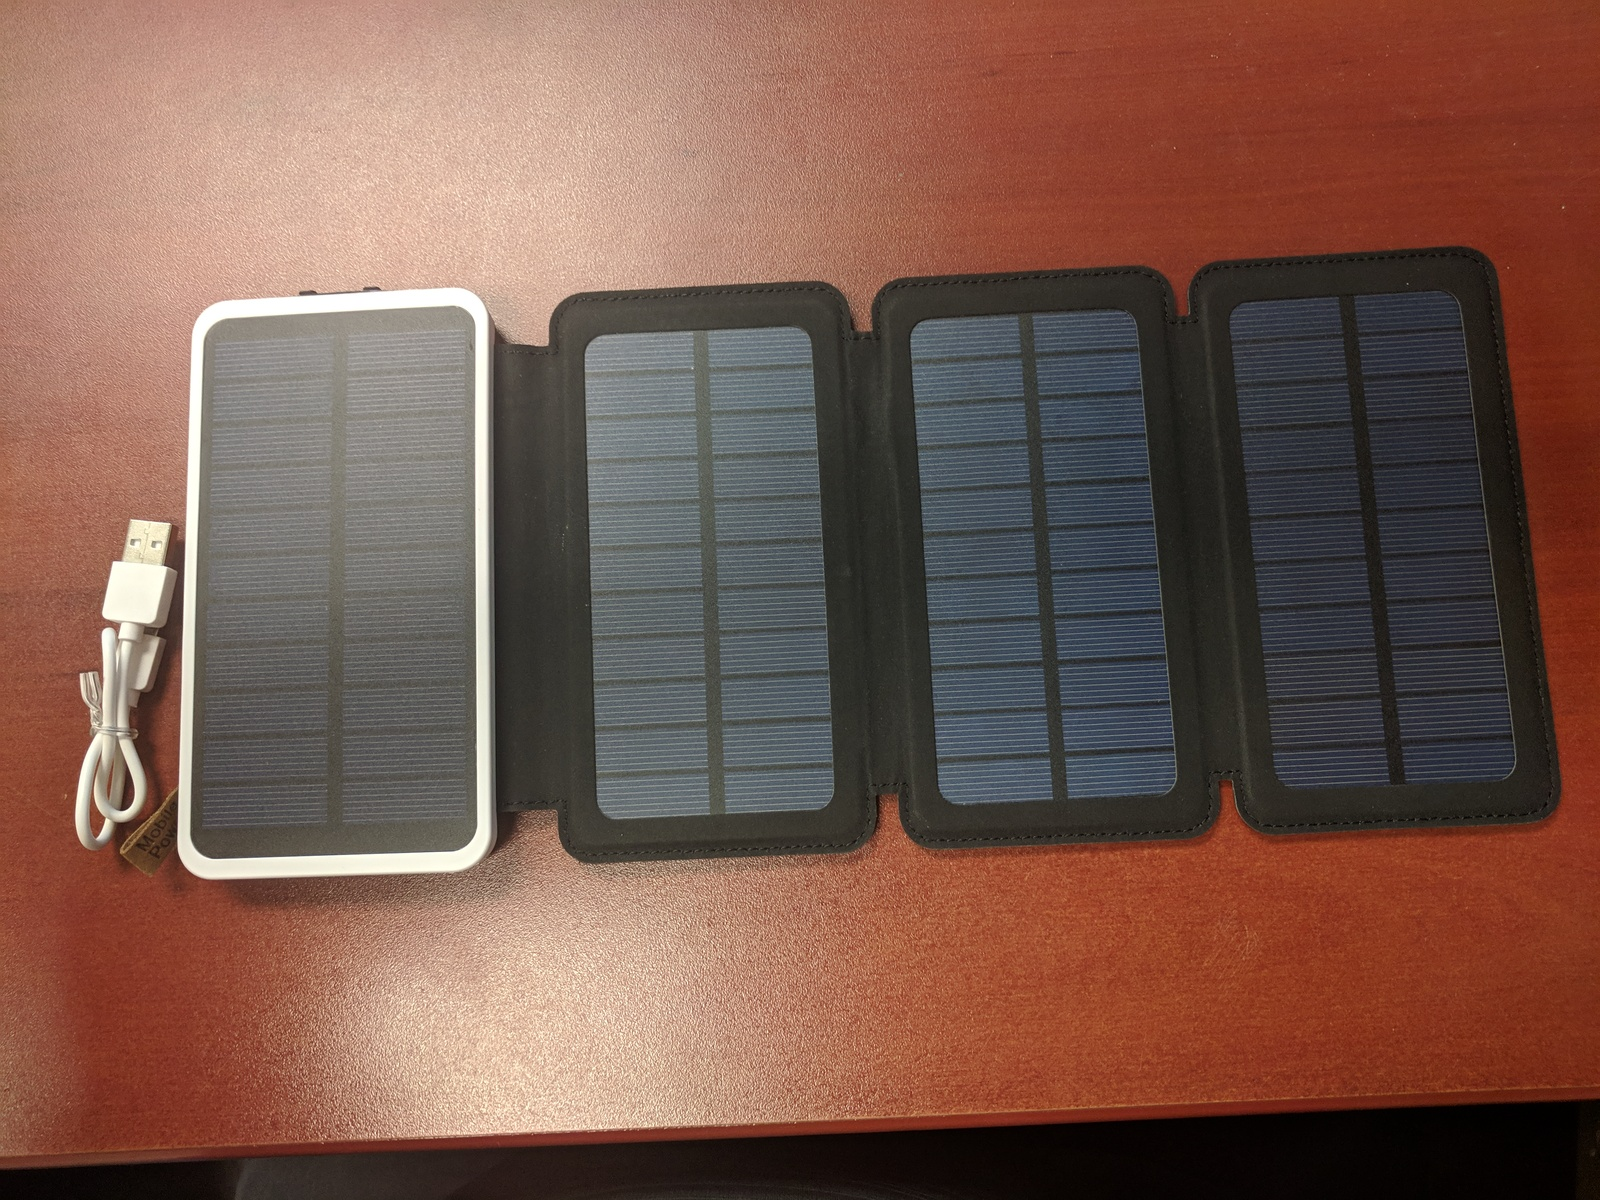 Incredibly awesome solar charger battery!